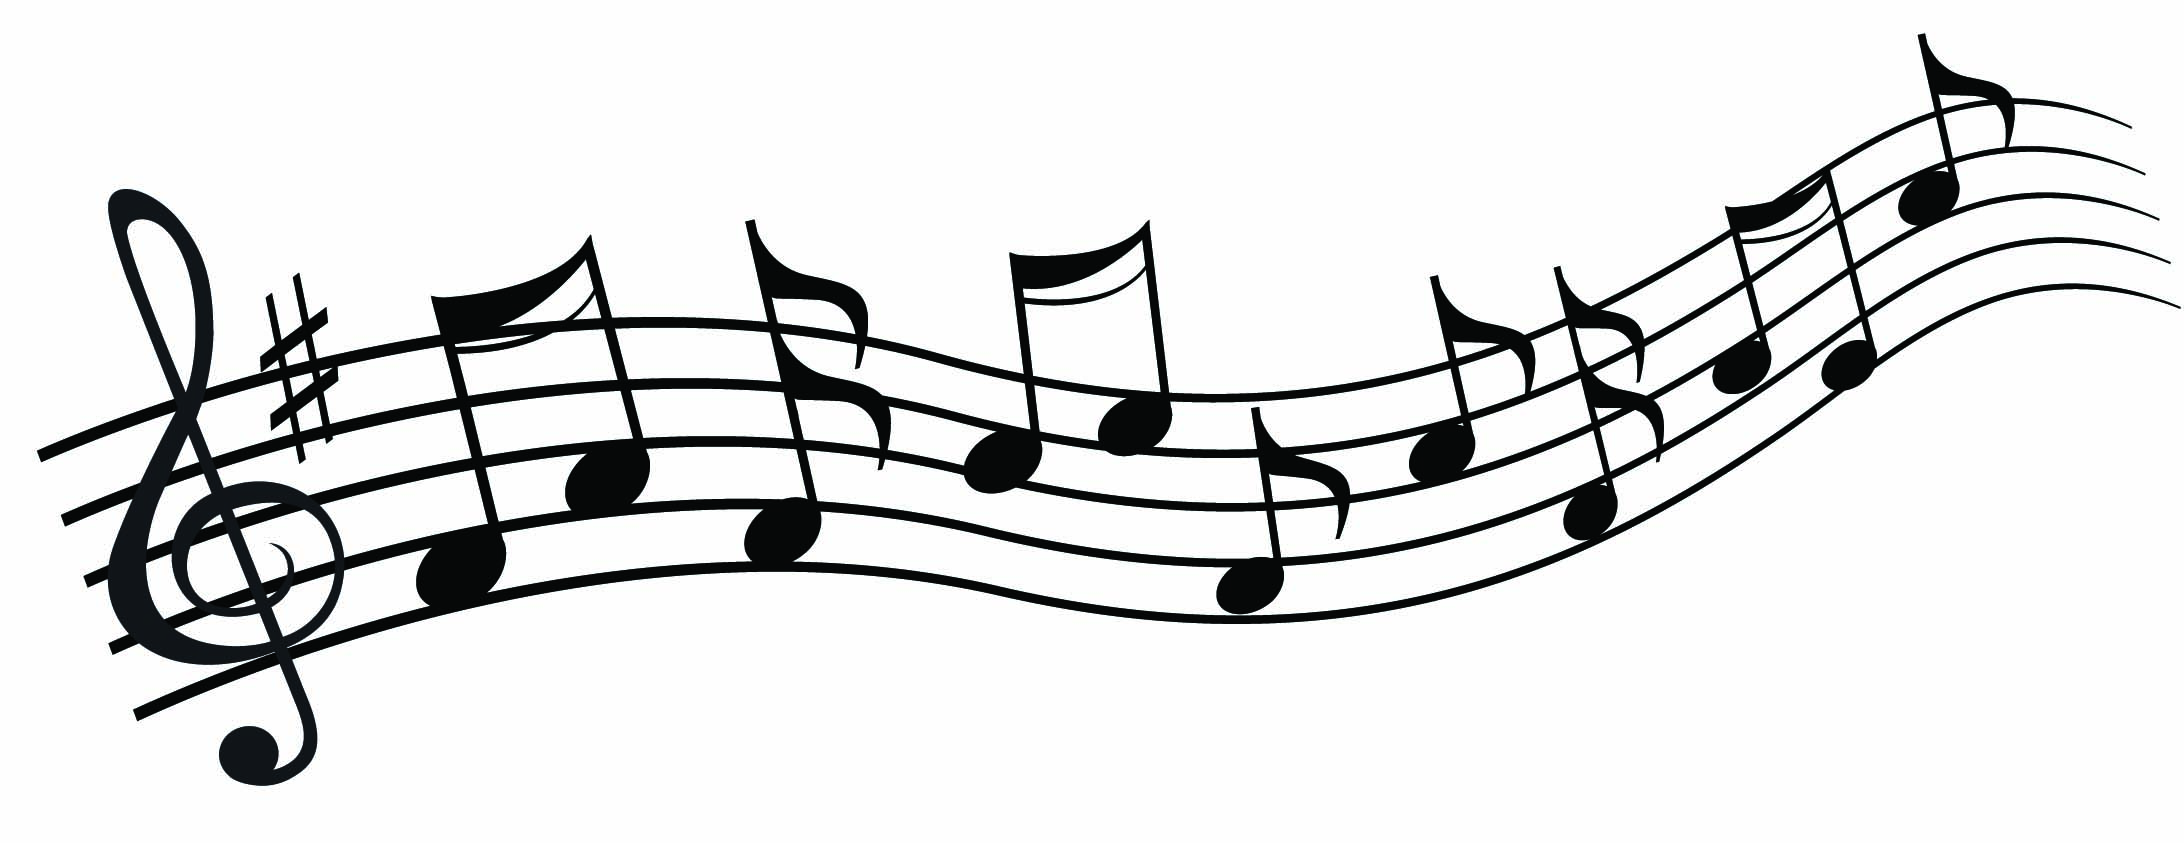 Music in clipart jpg library Music Note On Staff | Free download best Music Note On Staff on ... jpg library